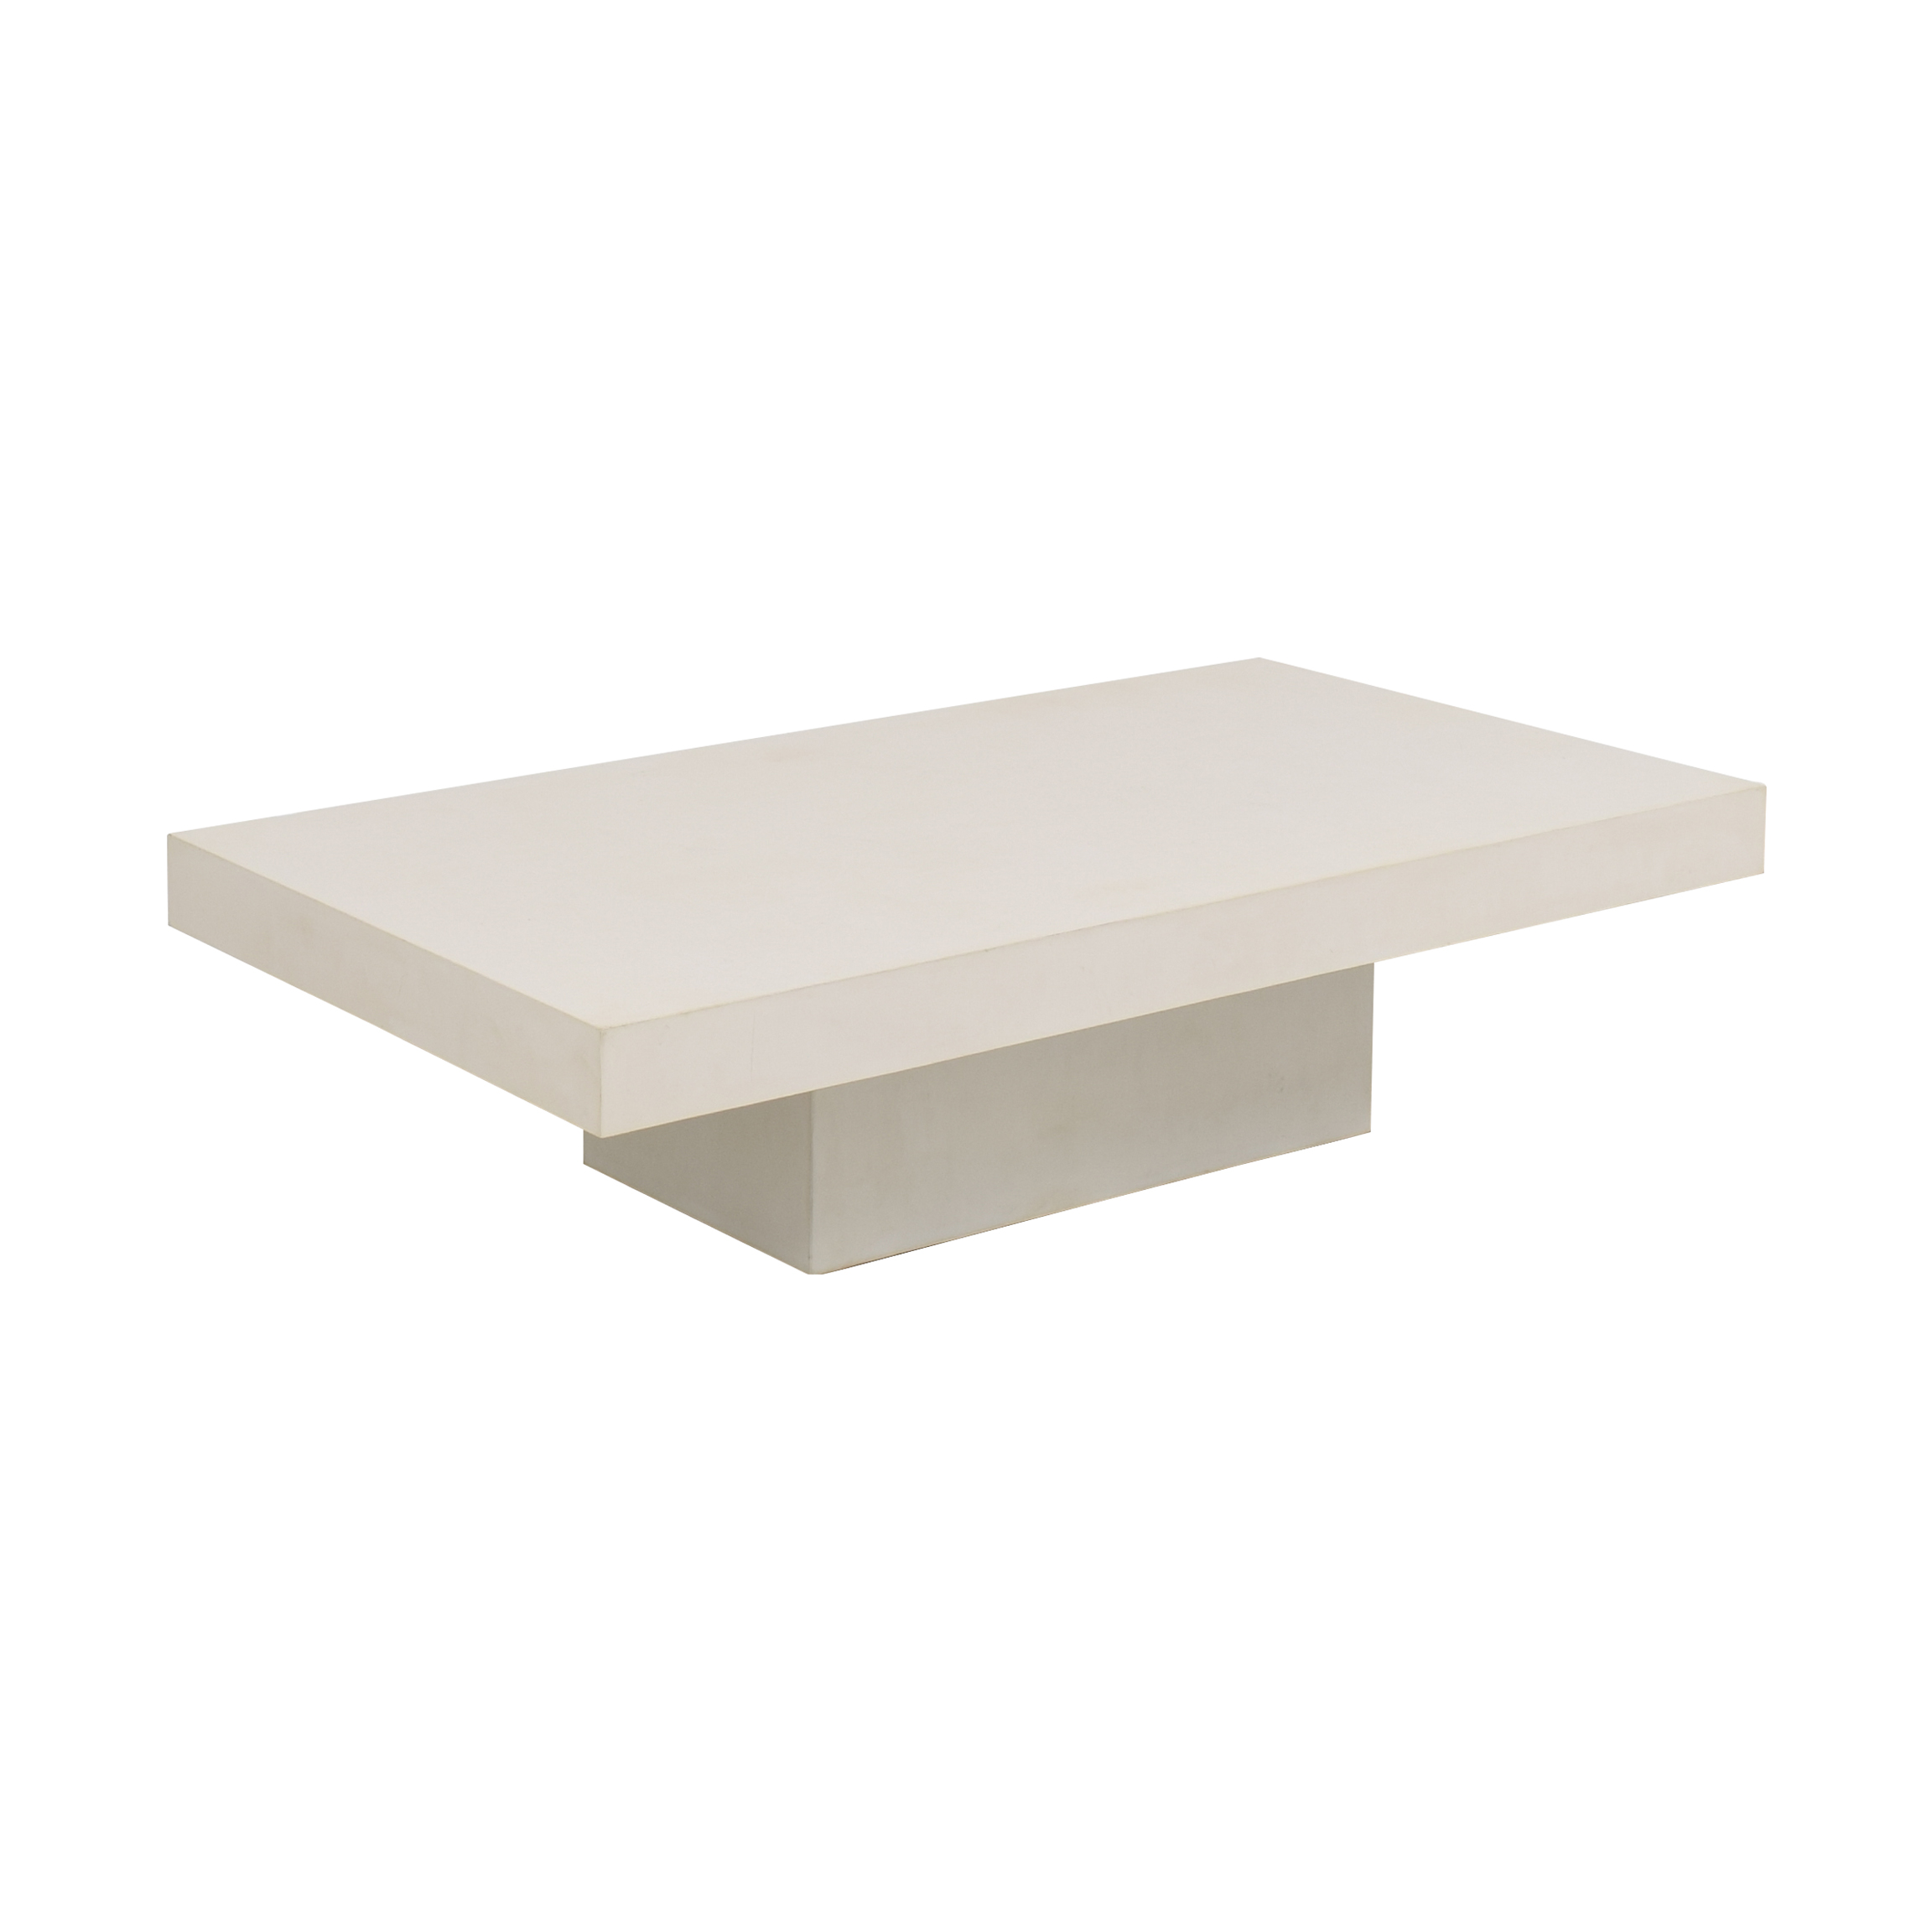 CB2 CB2 Element Cement Coffee Table pa